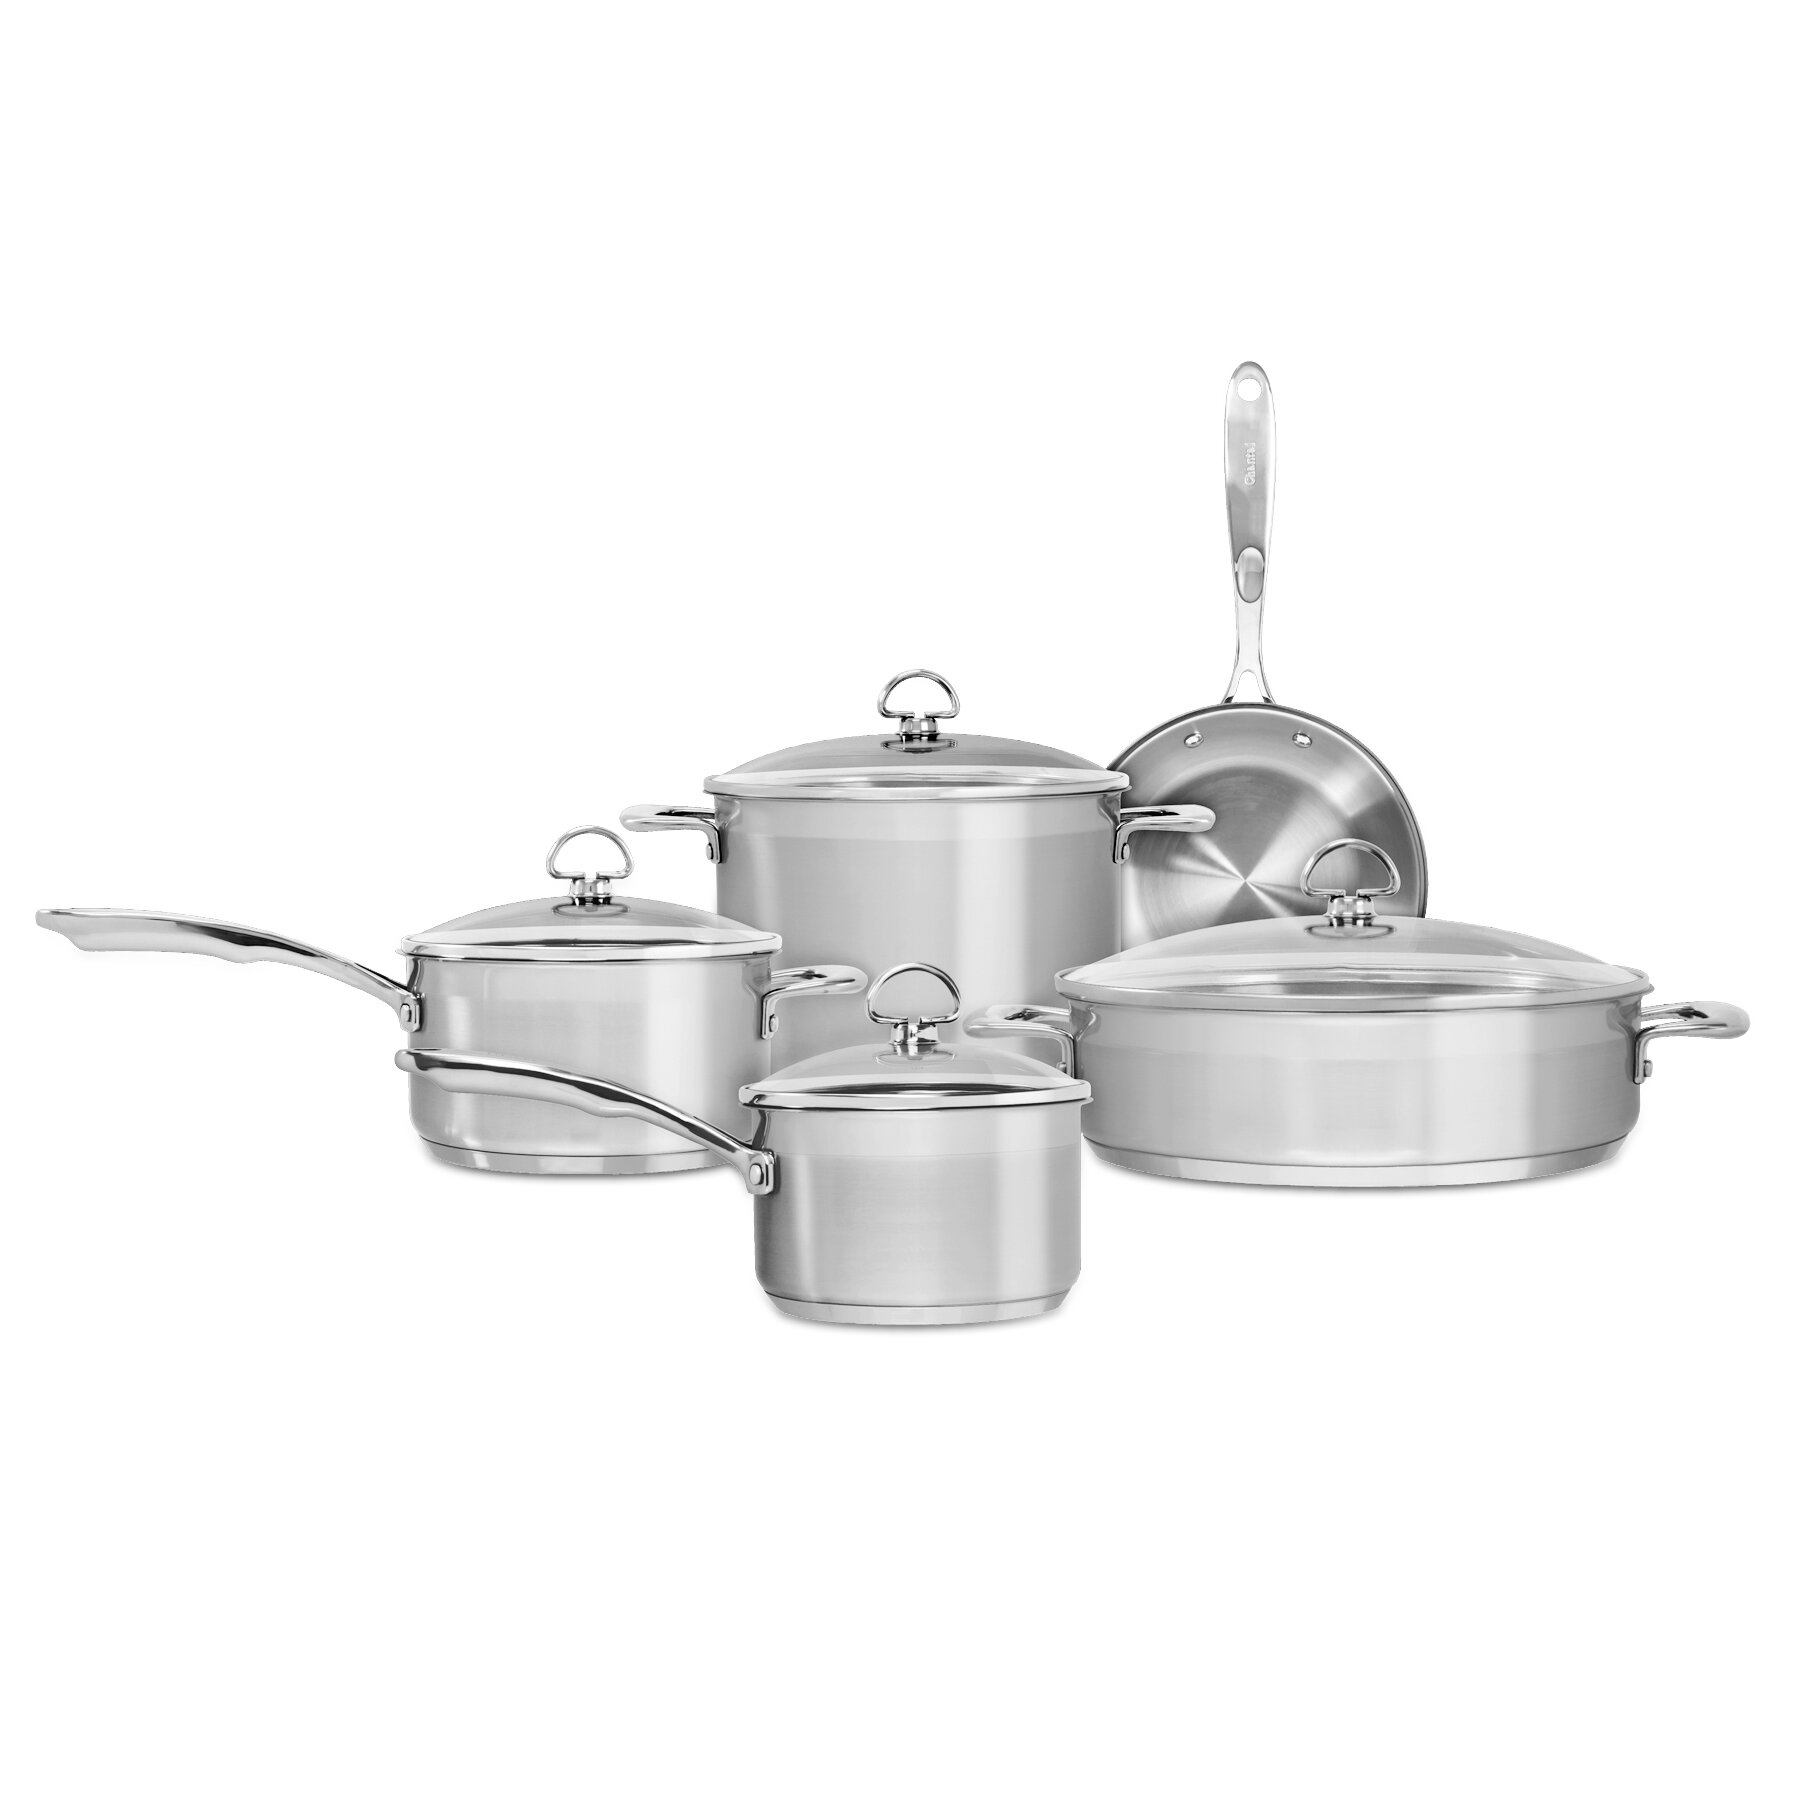 Chantal Steamer with Insert Lid Stainless Steel 6 Quart Casserole  New in Box